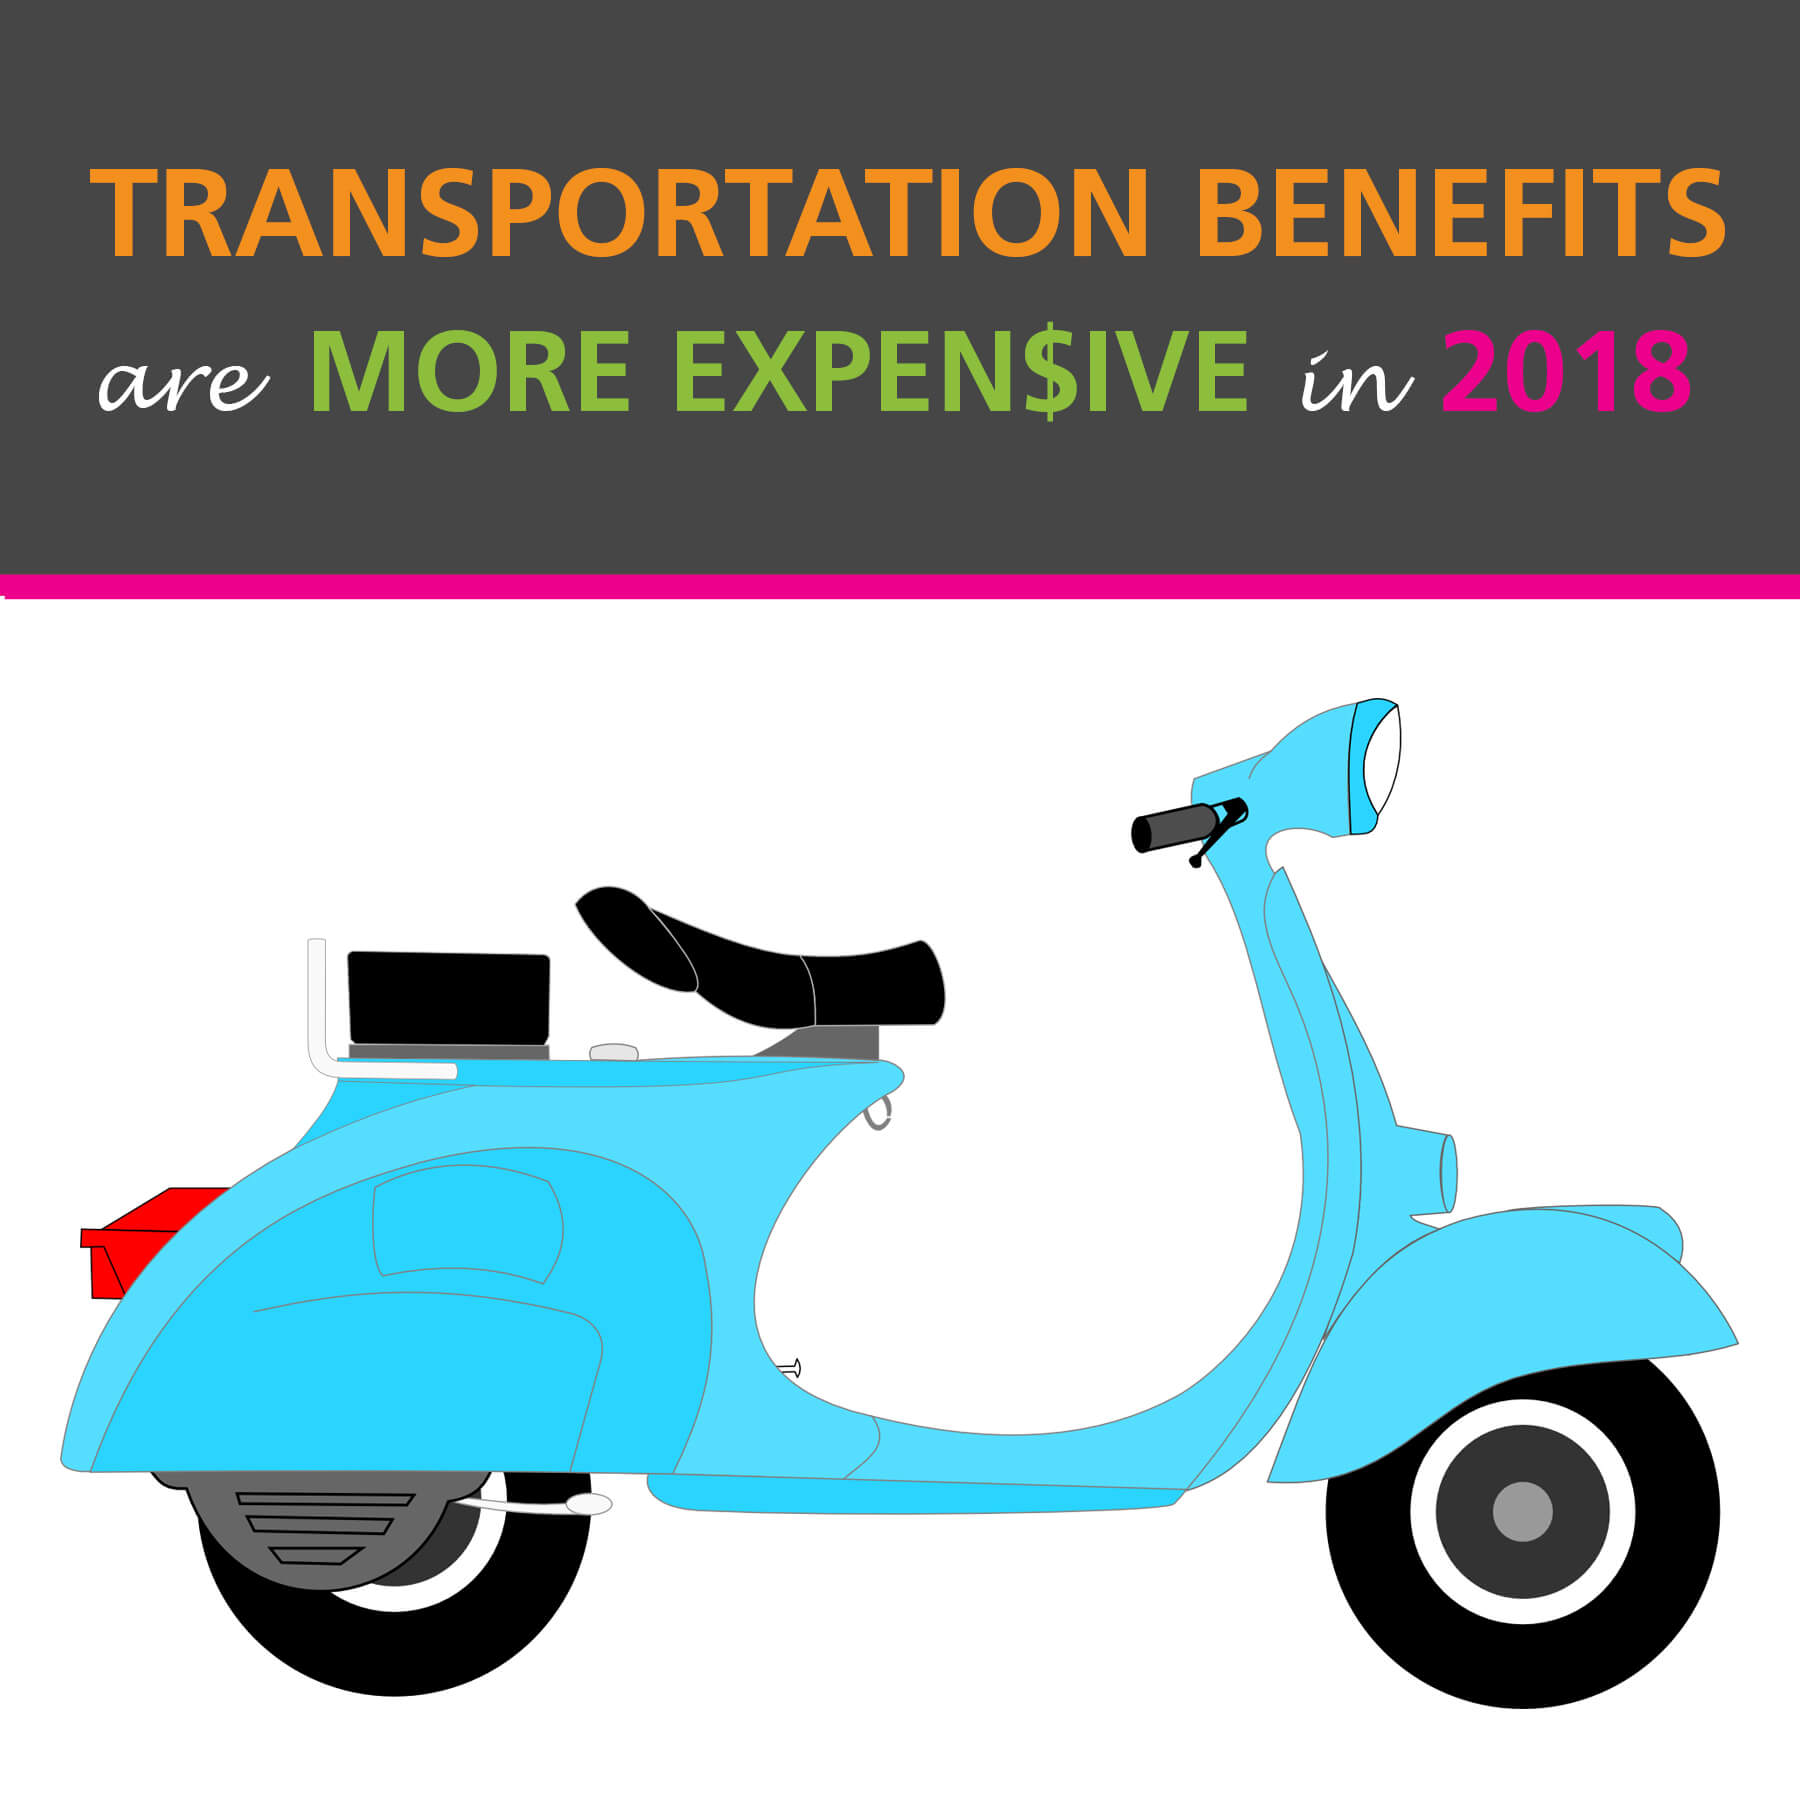 transportation benefits more expensive in 2018